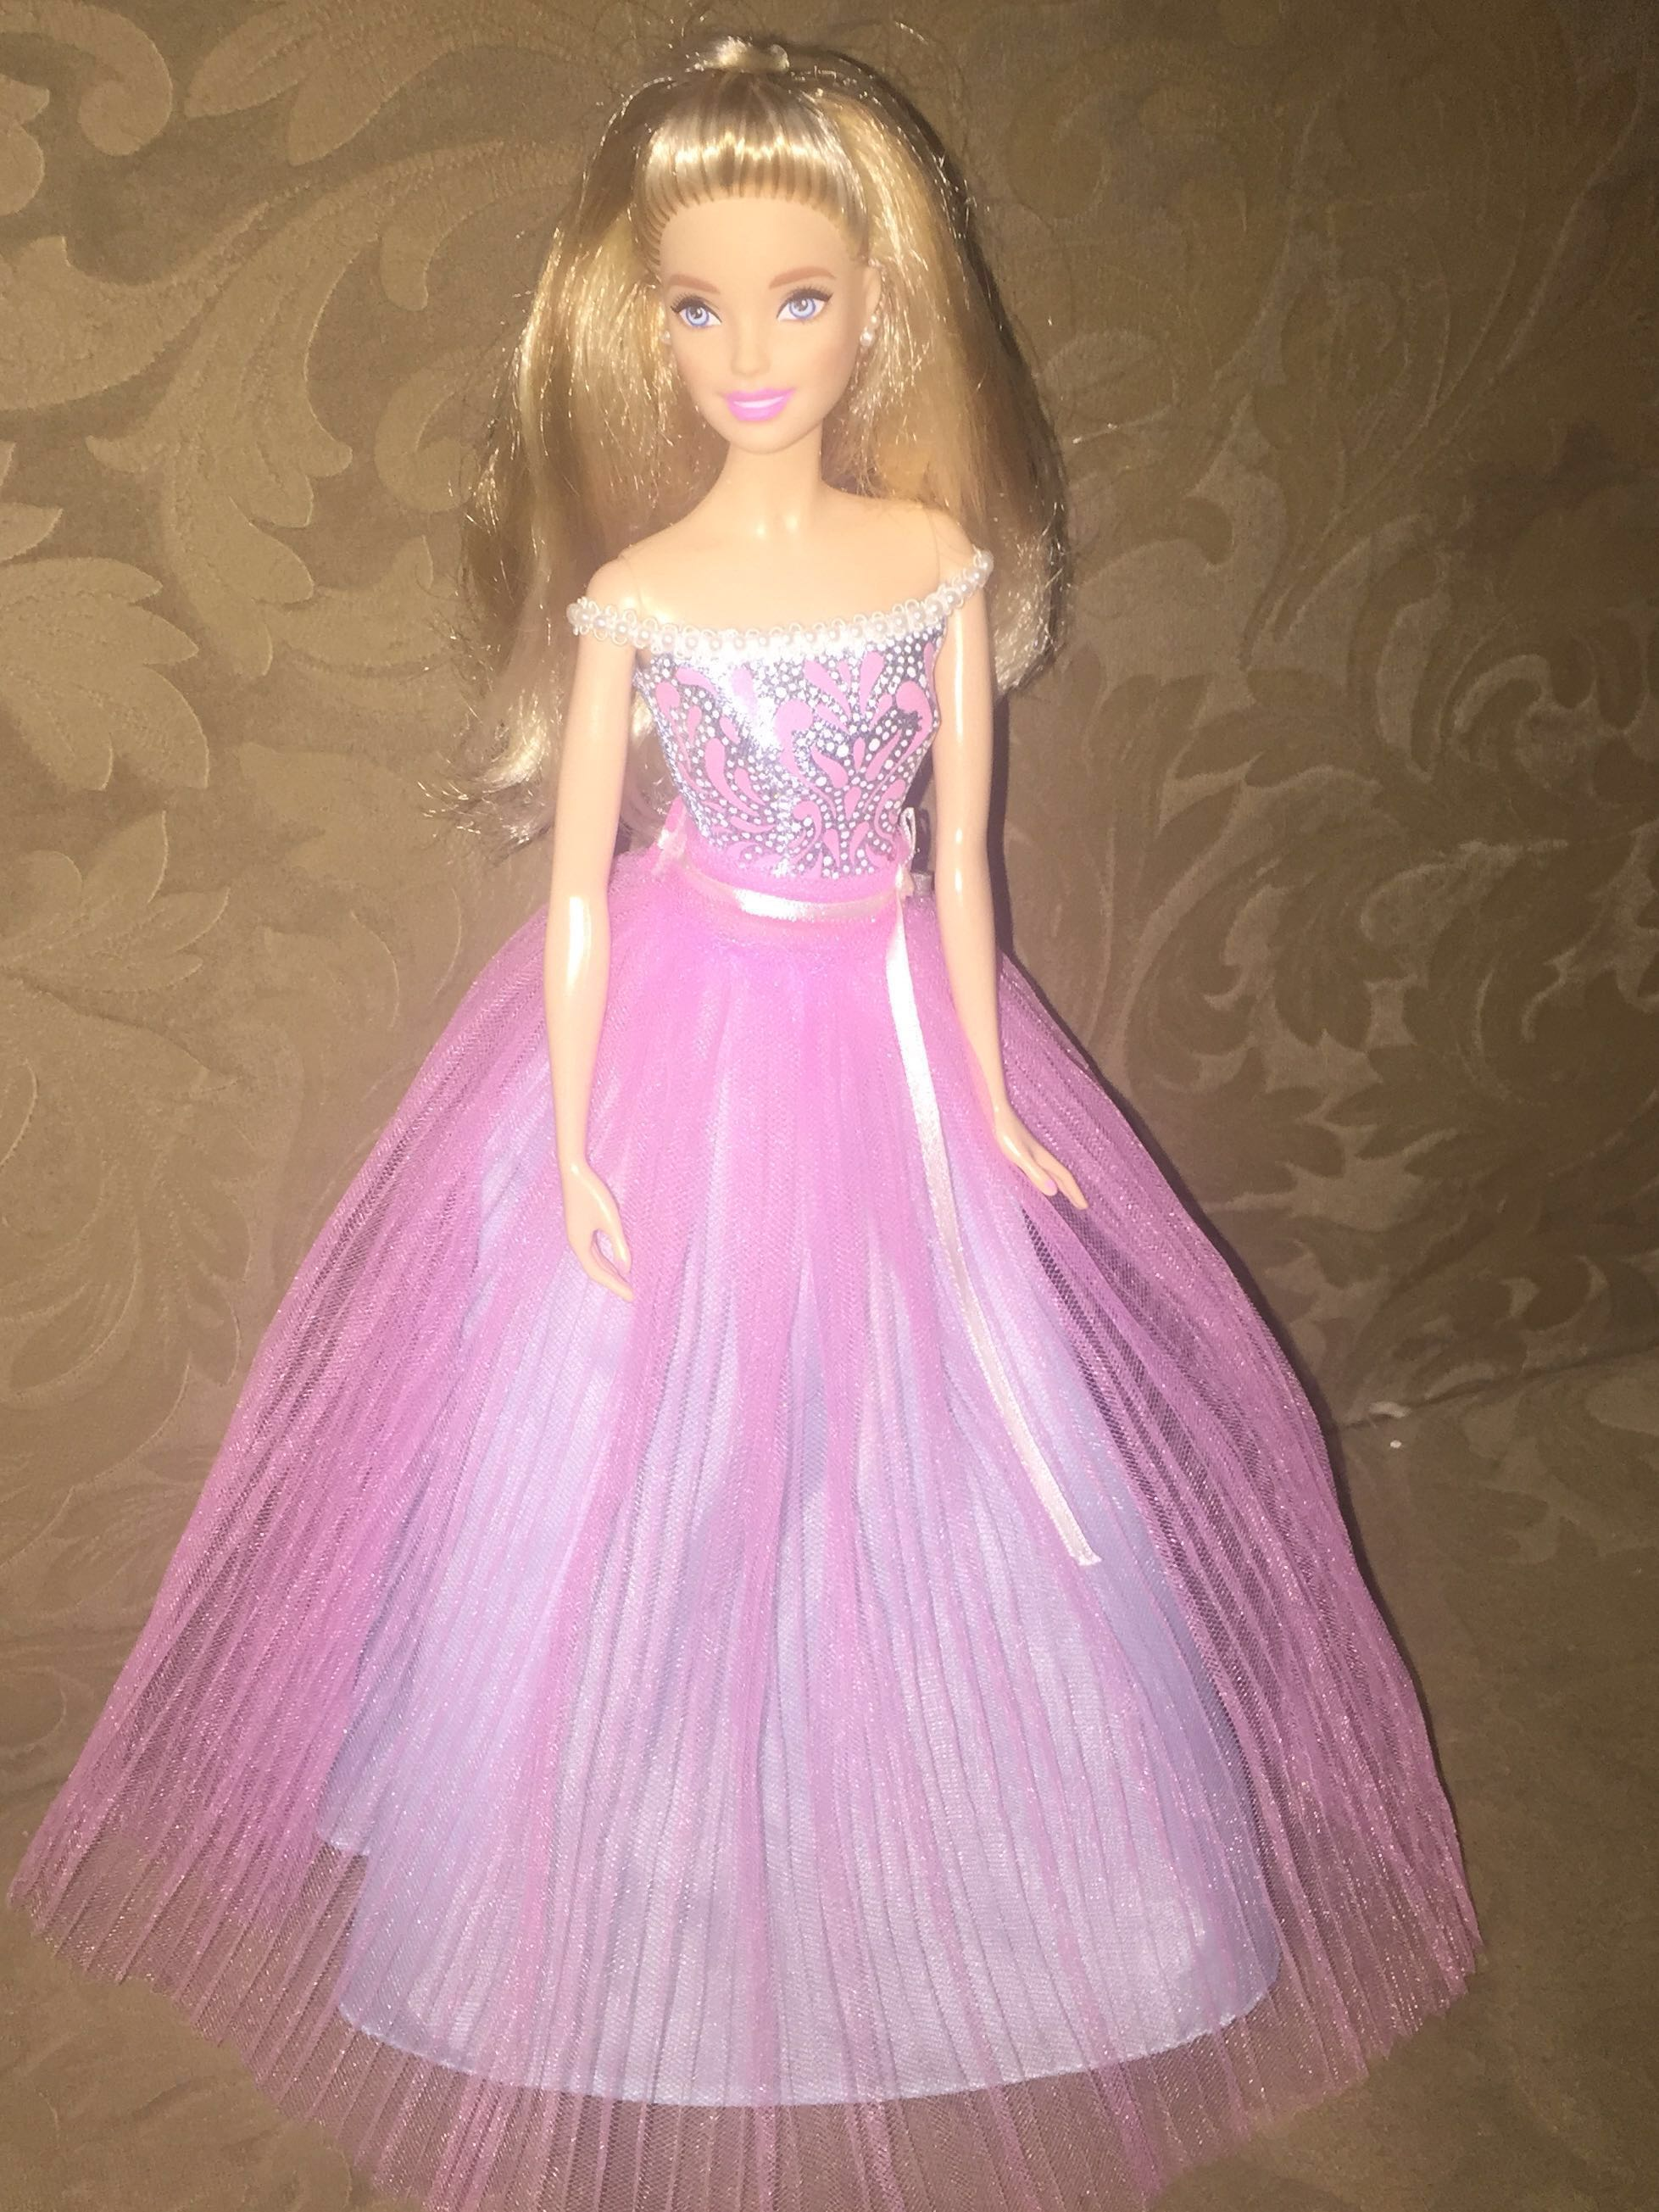 Birthday Wishes Barbie Toys Games Other On Carousell